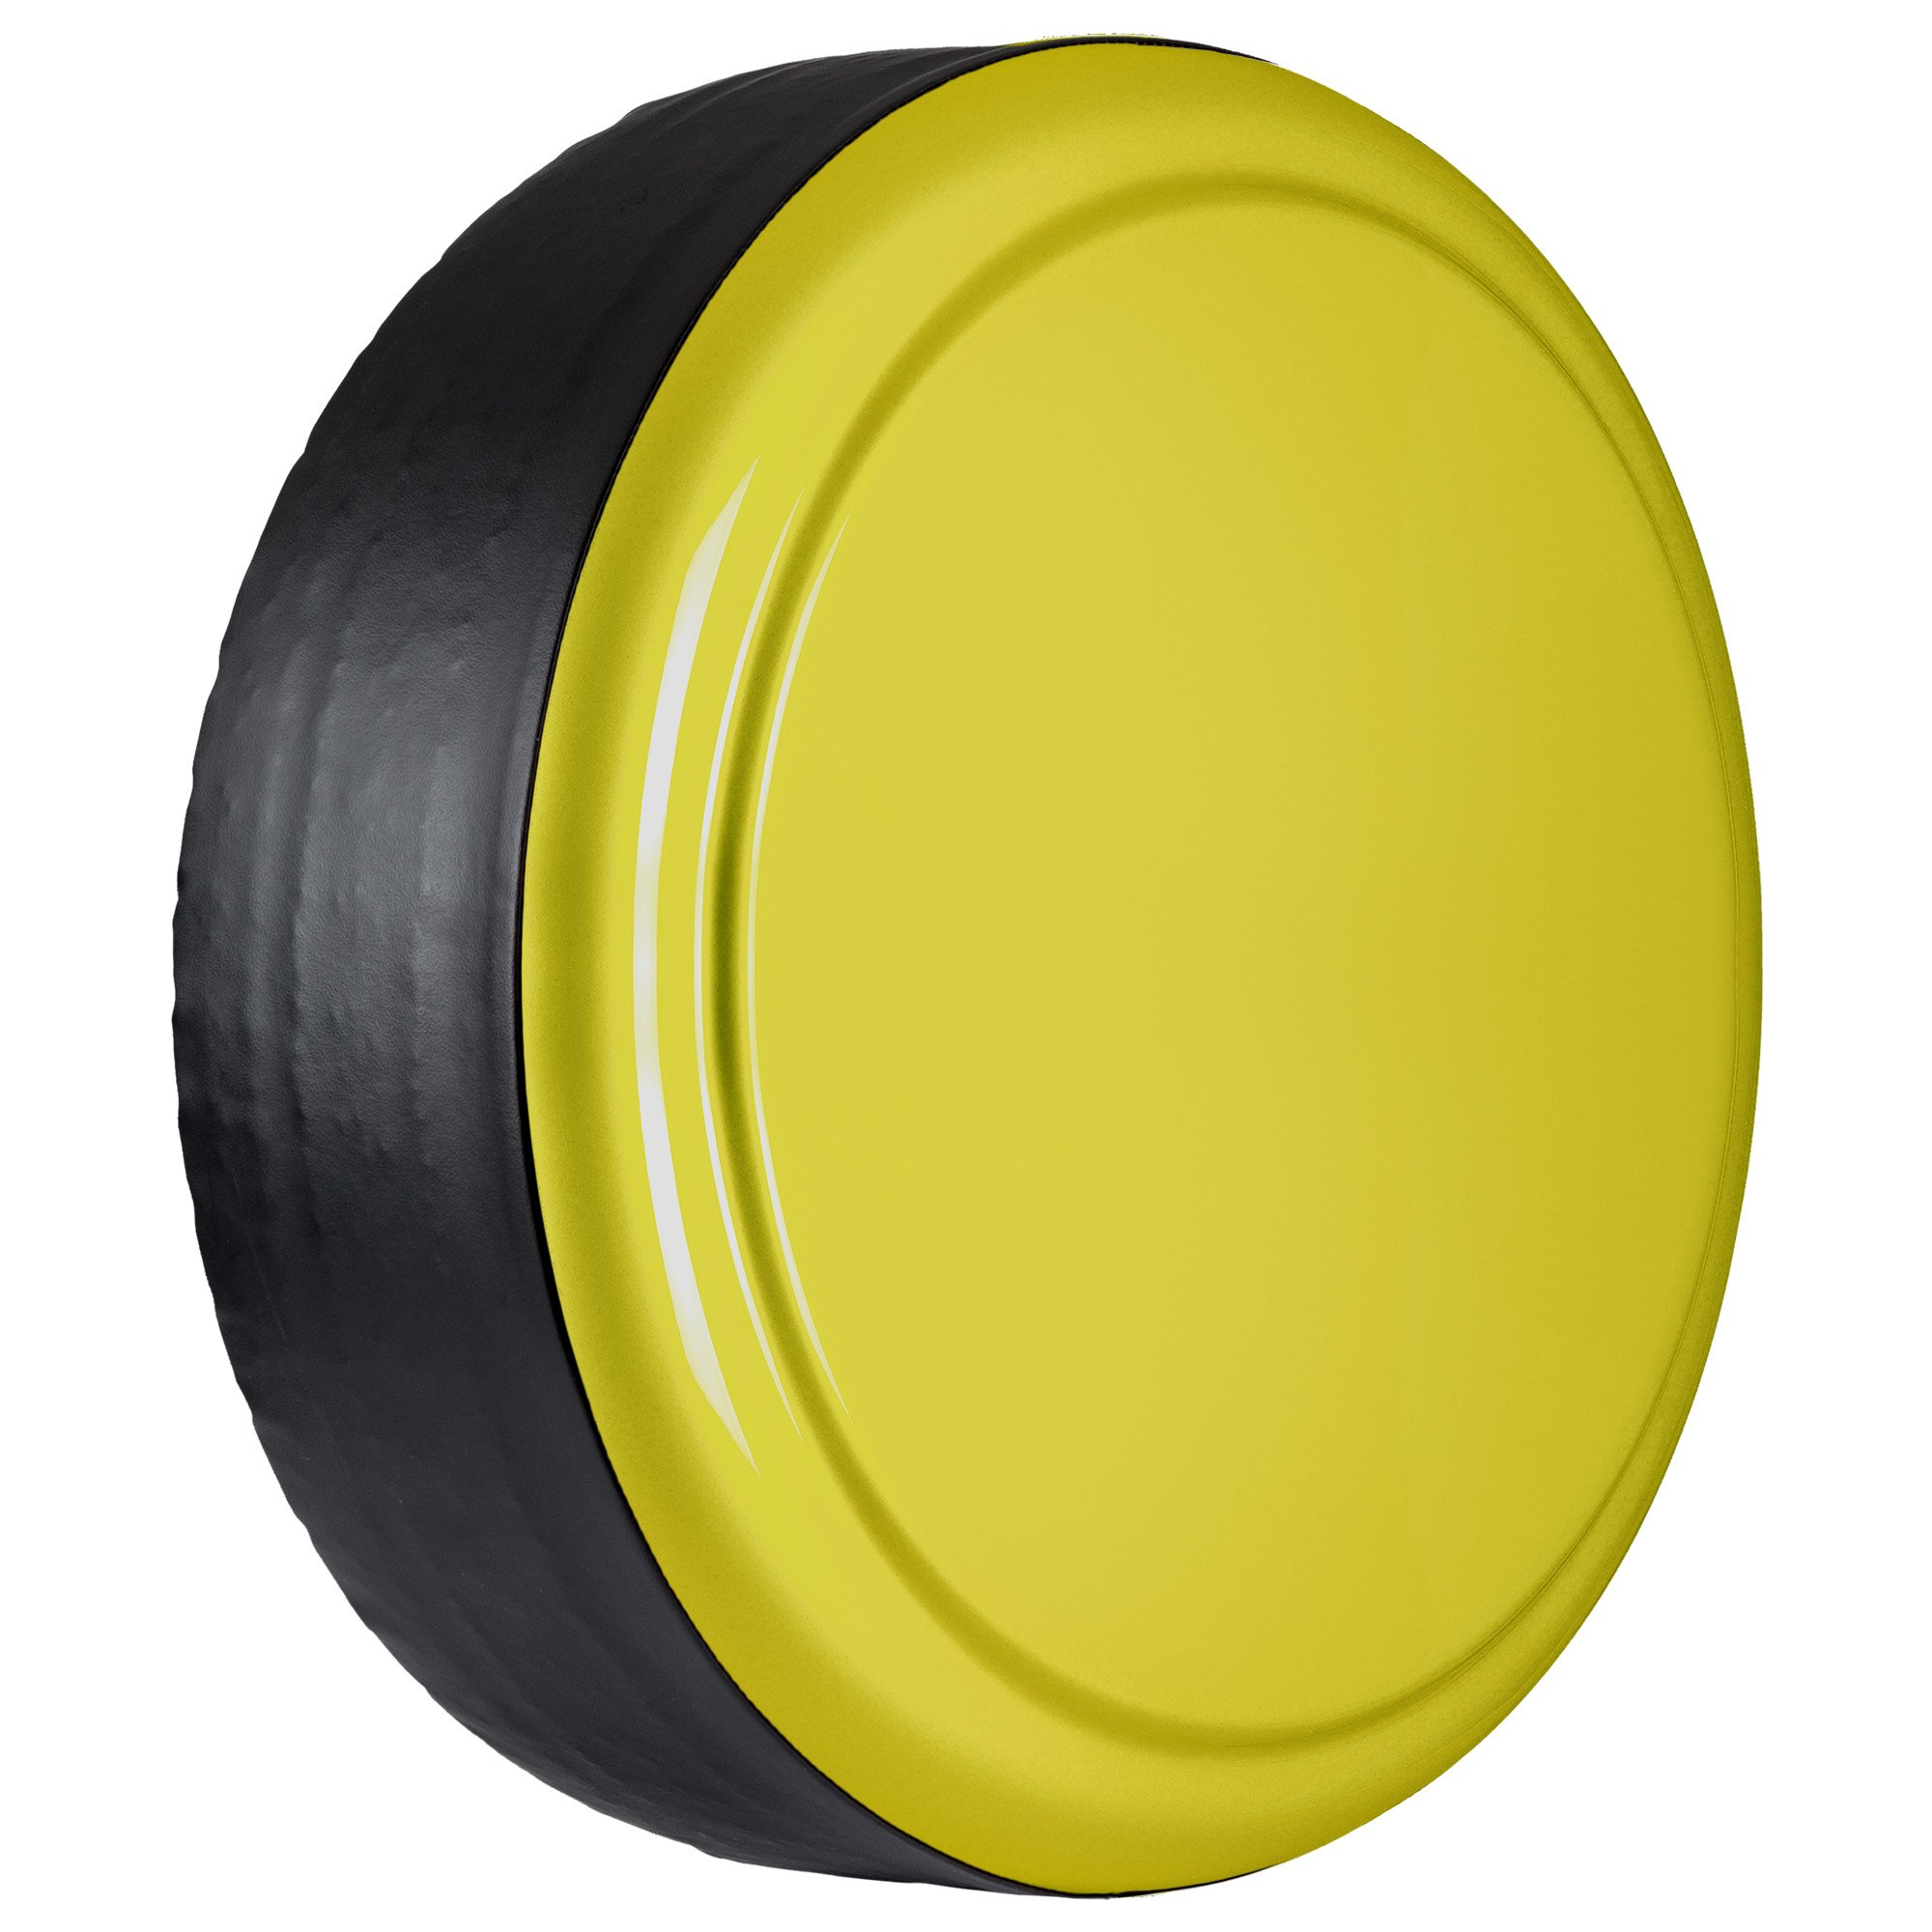 Jeep Wrangler (JK) - 32'' Color Matched Rigid Tire Cover (Plastic Face & Vinyl Band) - Acid Yellow by Boomerang (Image #3)